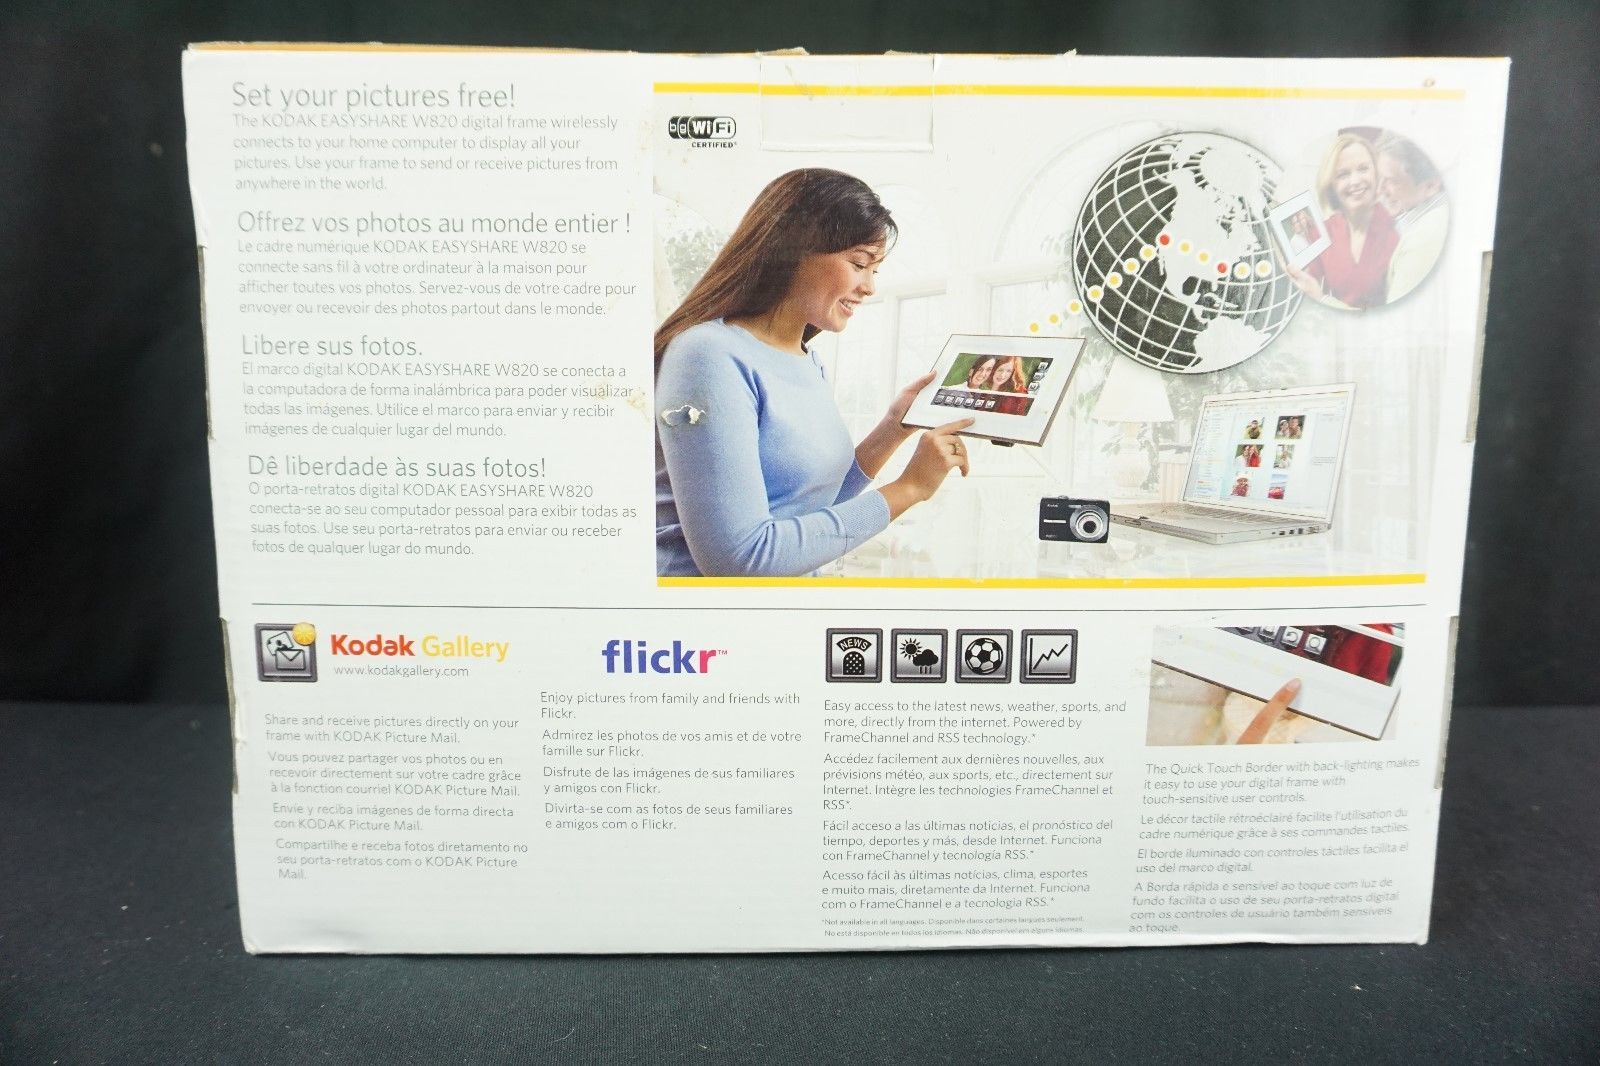 Kodak Easyshare W820 8-Inch Wireless Digital and 50 similar items